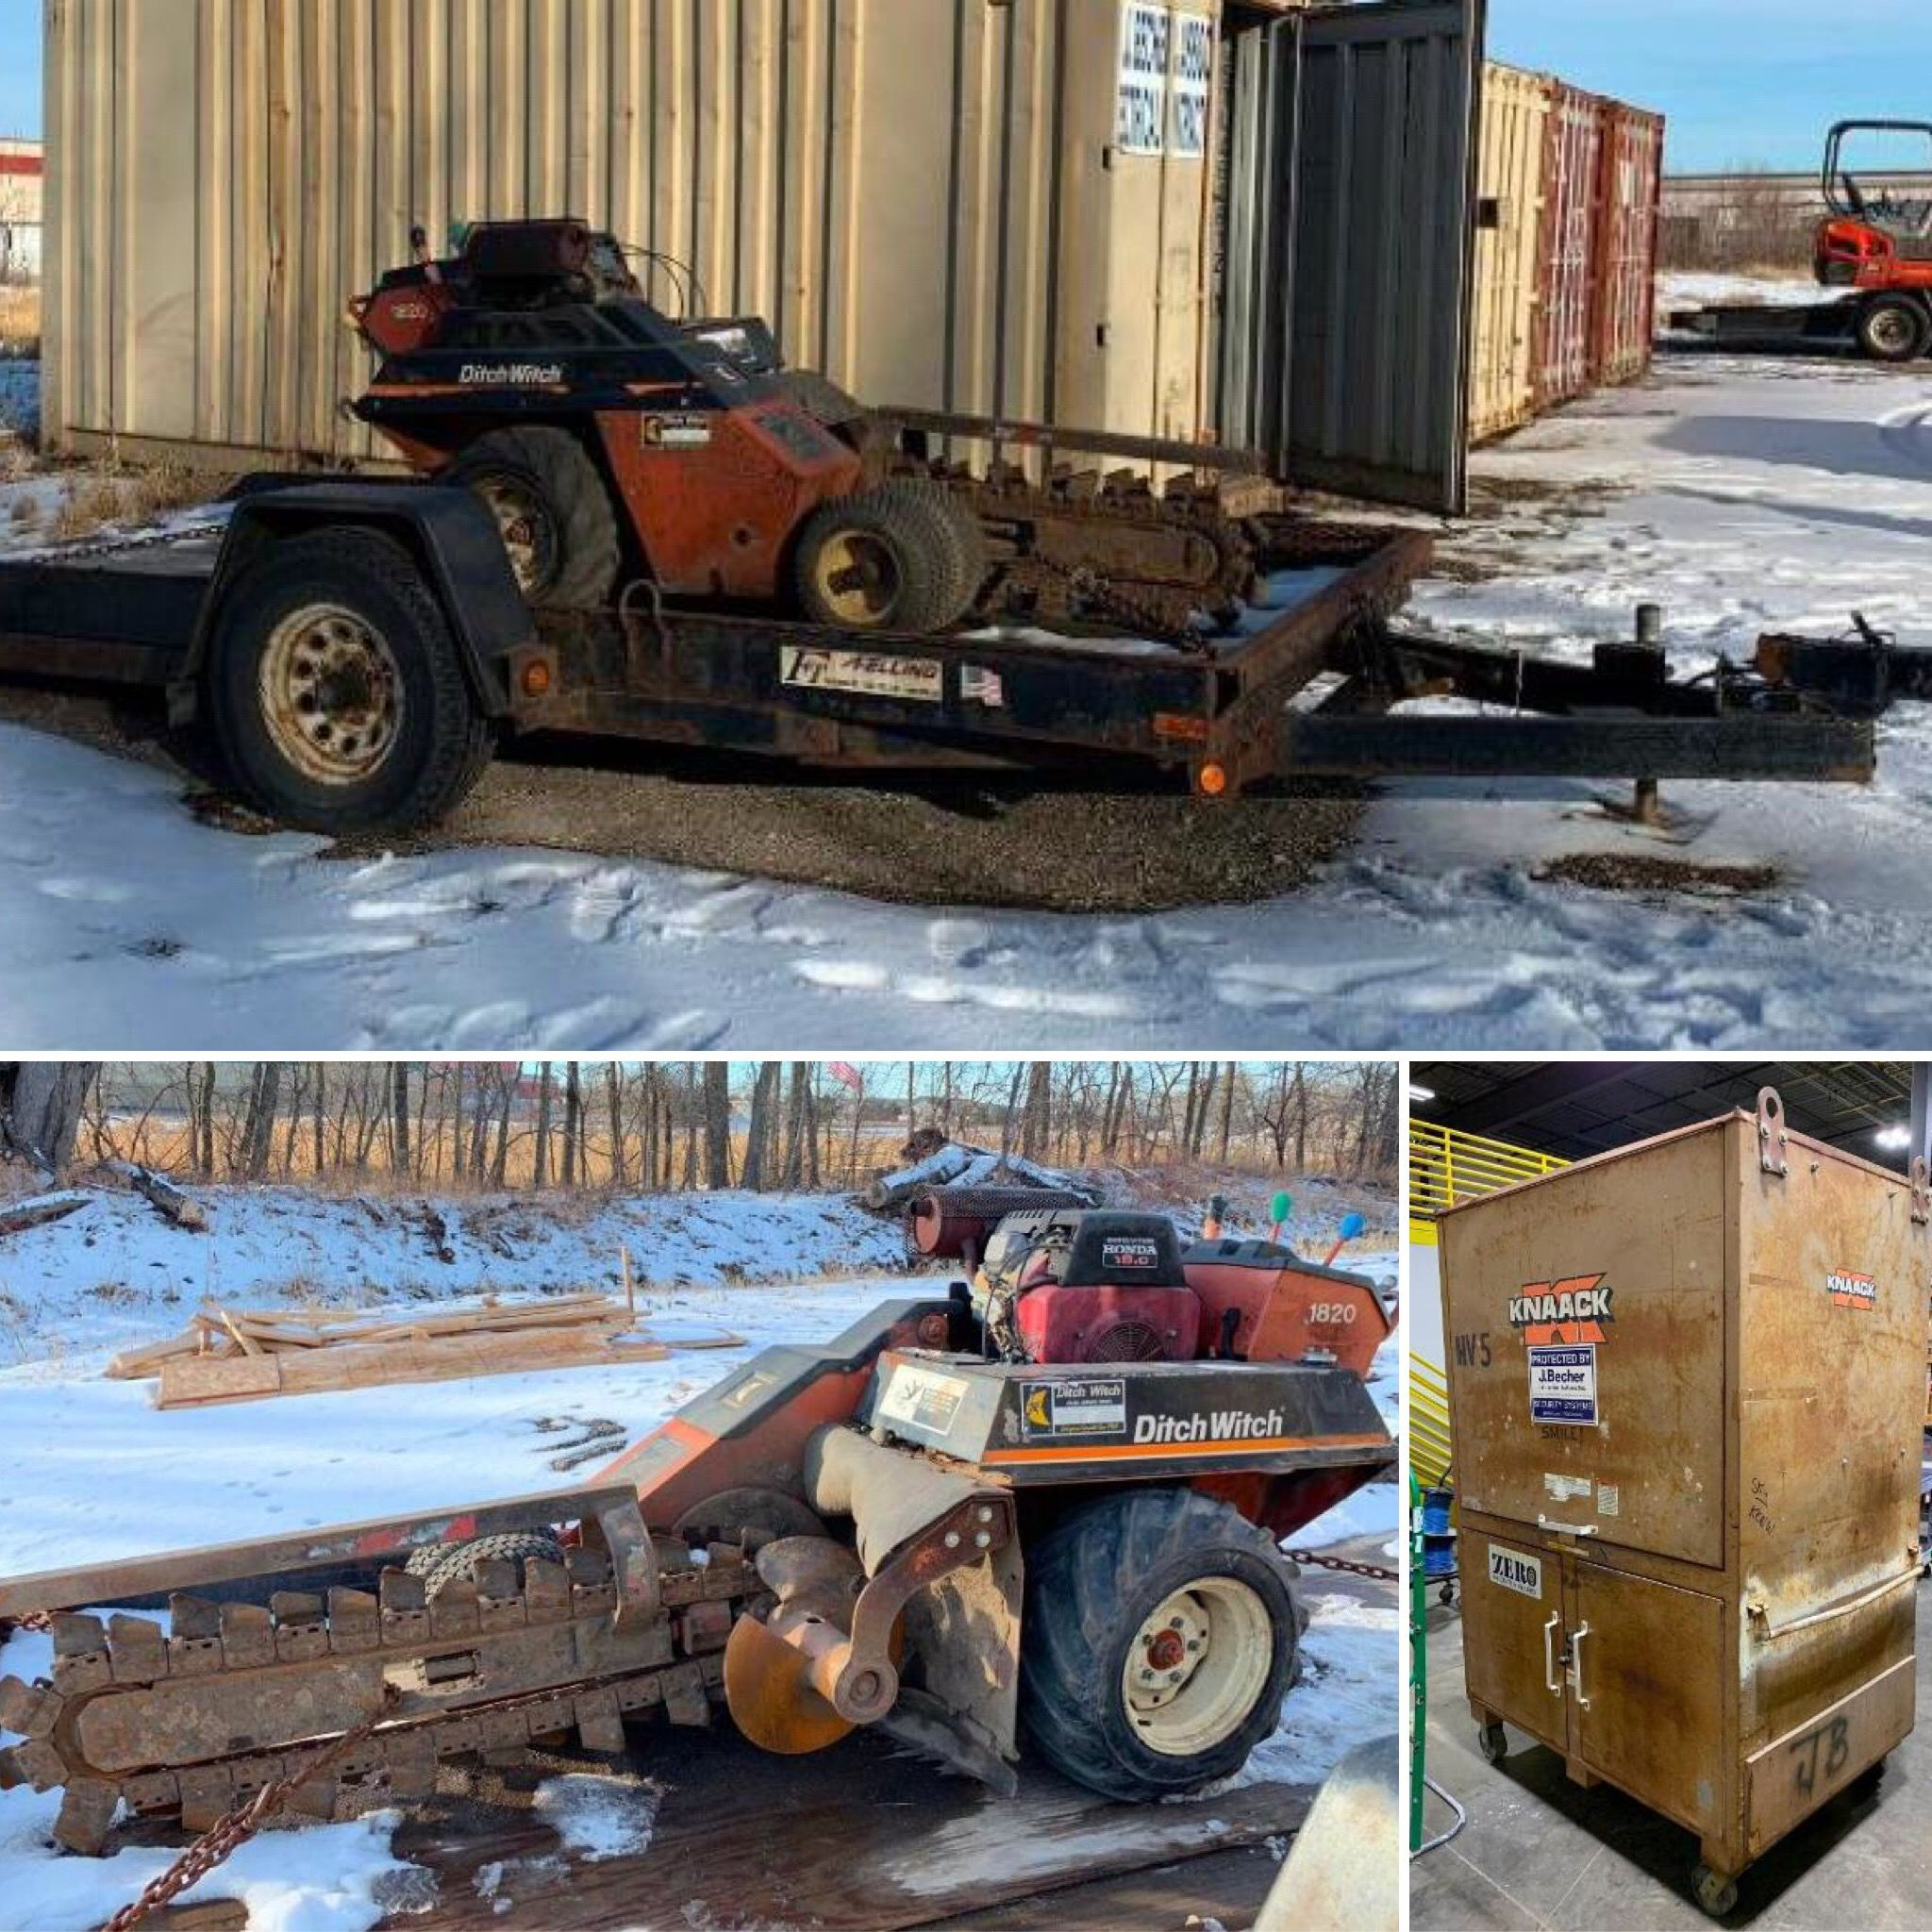 auction complete check out this feller tilt trailer ditch witch 1820 and knaack gang box bid online today at www bid 2 buy com naapro auctionswork  [ 2048 x 2048 Pixel ]